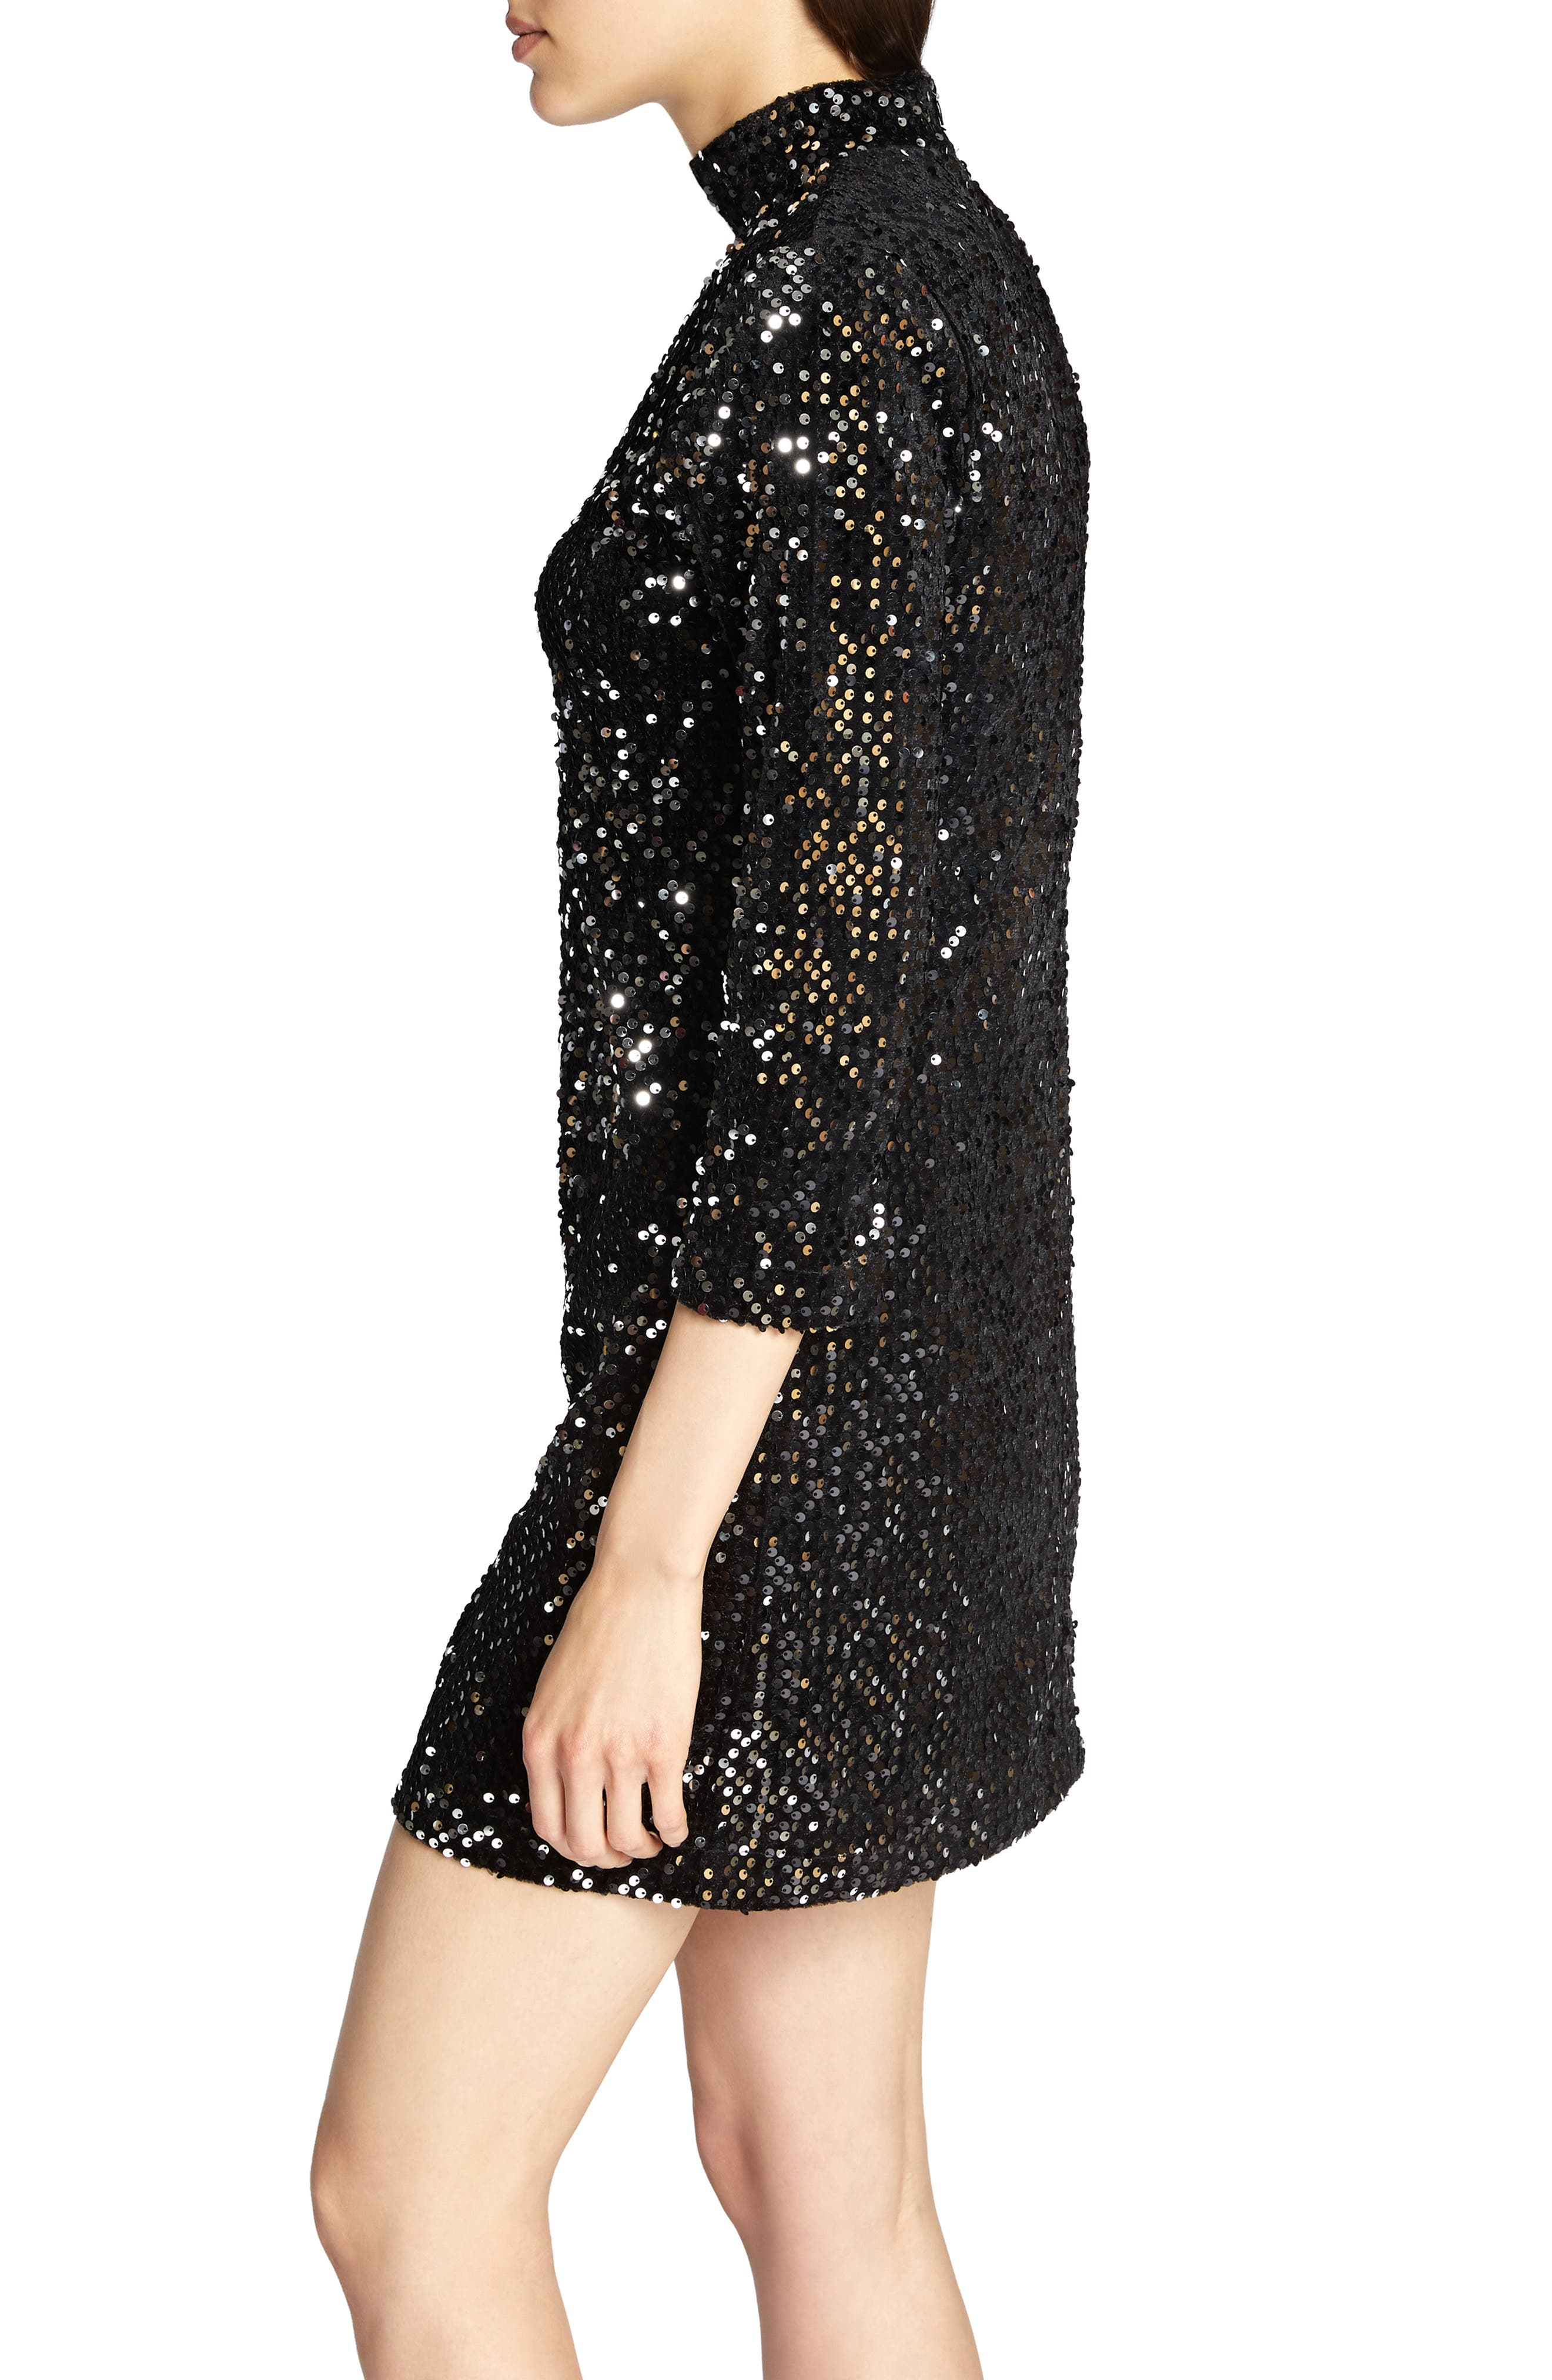 Keep Your Heads Up Sequin Shift Dress,                             Alternate thumbnail 3, color,                             BLACK/ SILVER